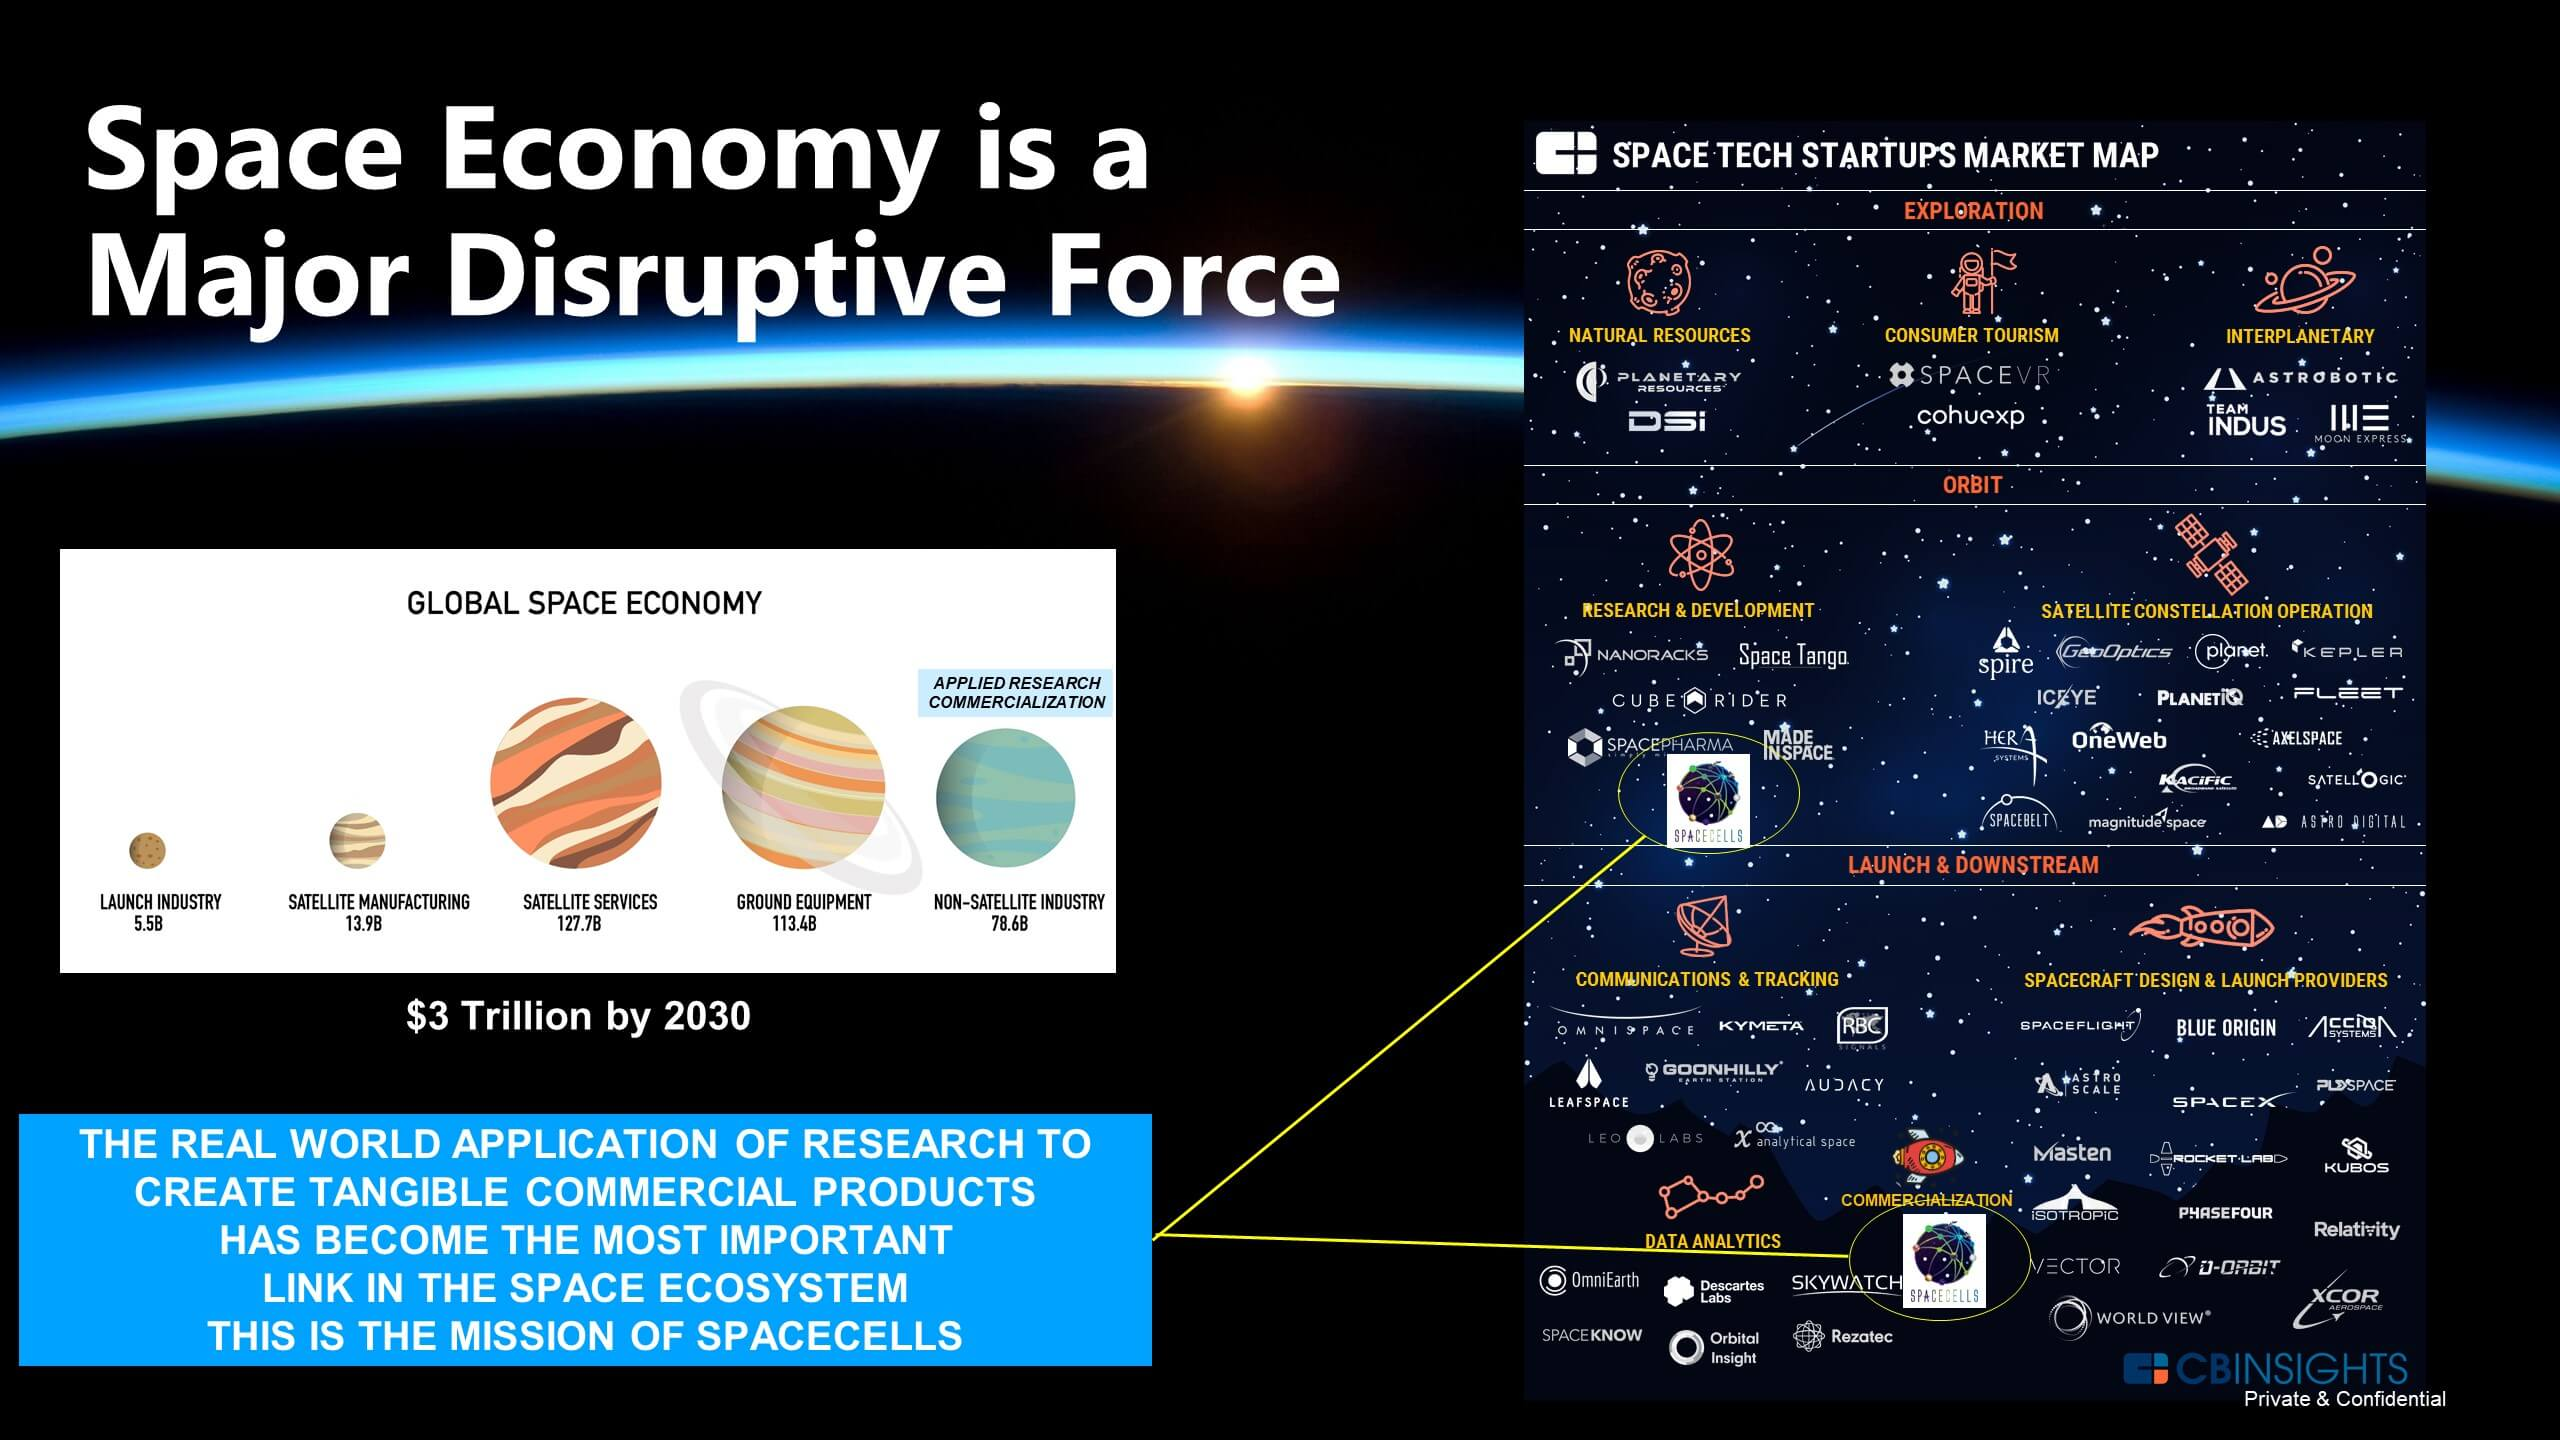 Space Economy is a Major Disruptive Force